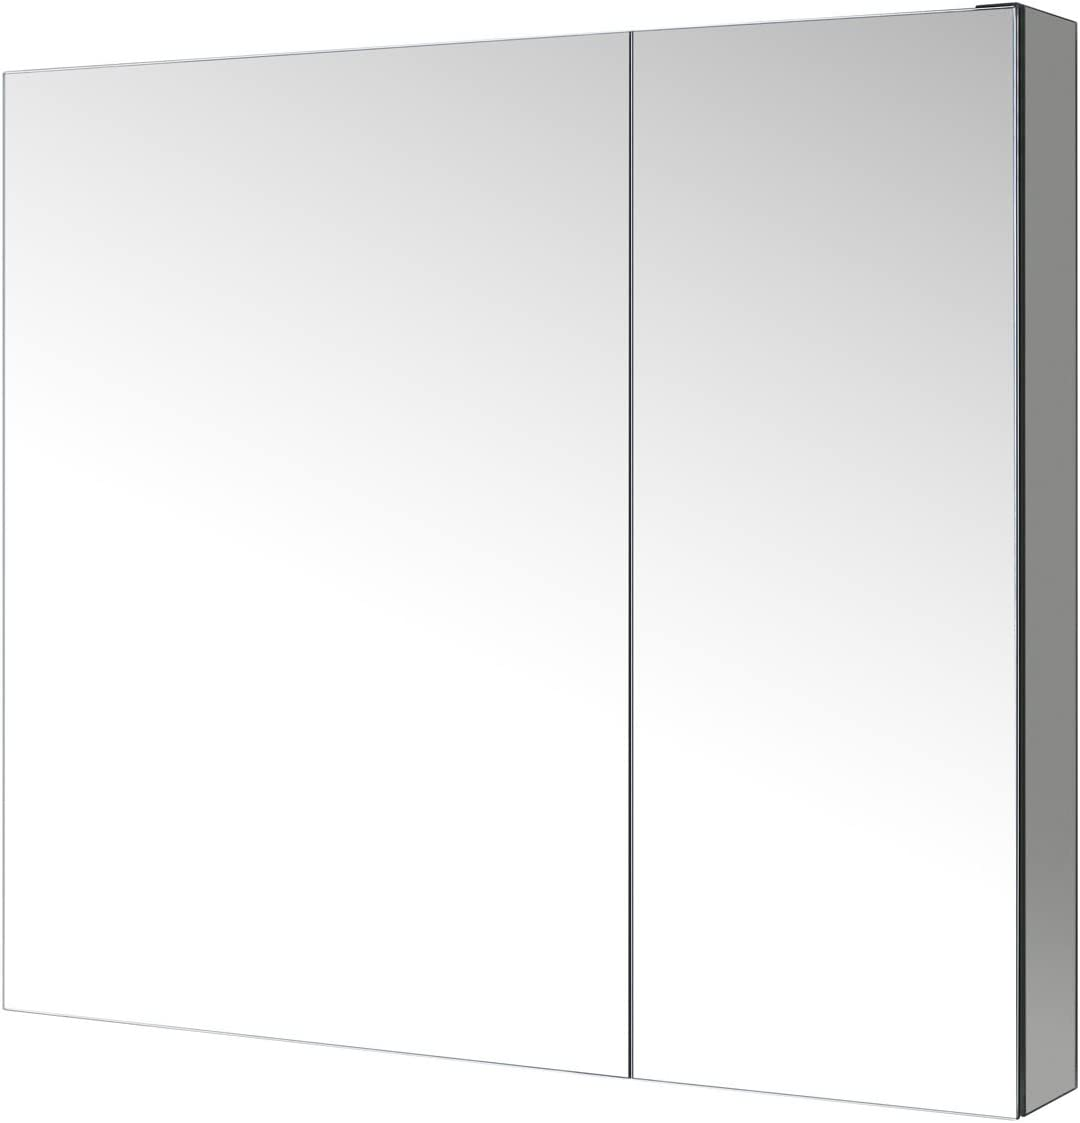 Virtu J-MED01A30 Confiant Mirrored Medicine Cabinet Recessed or Surface Mount, 30